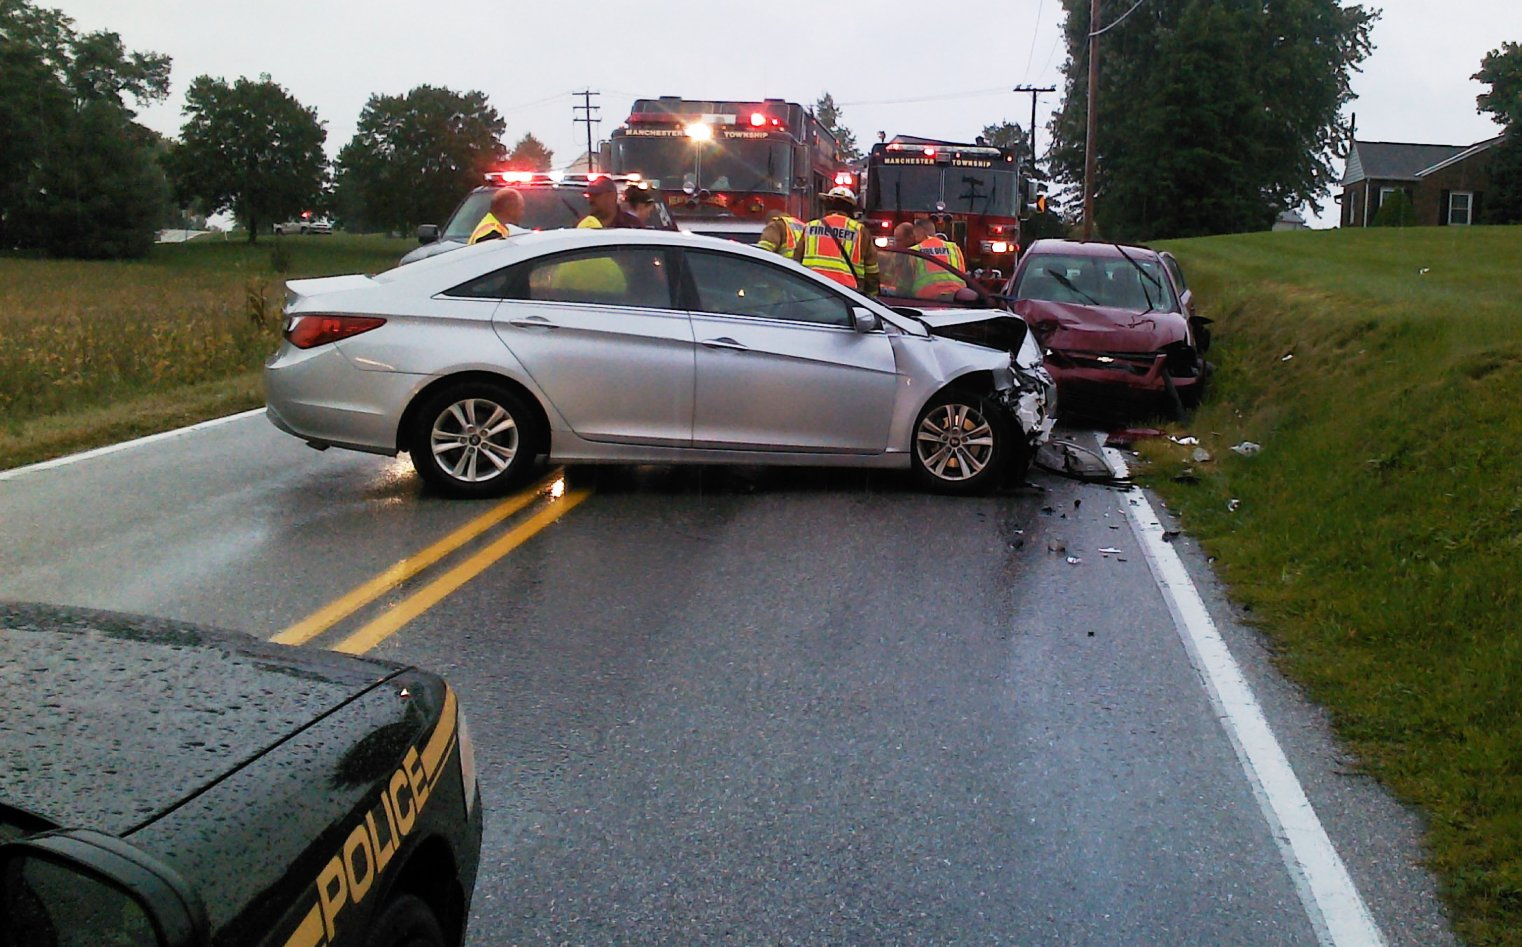 Vehicle Accident News Stories & Articles: One injured in